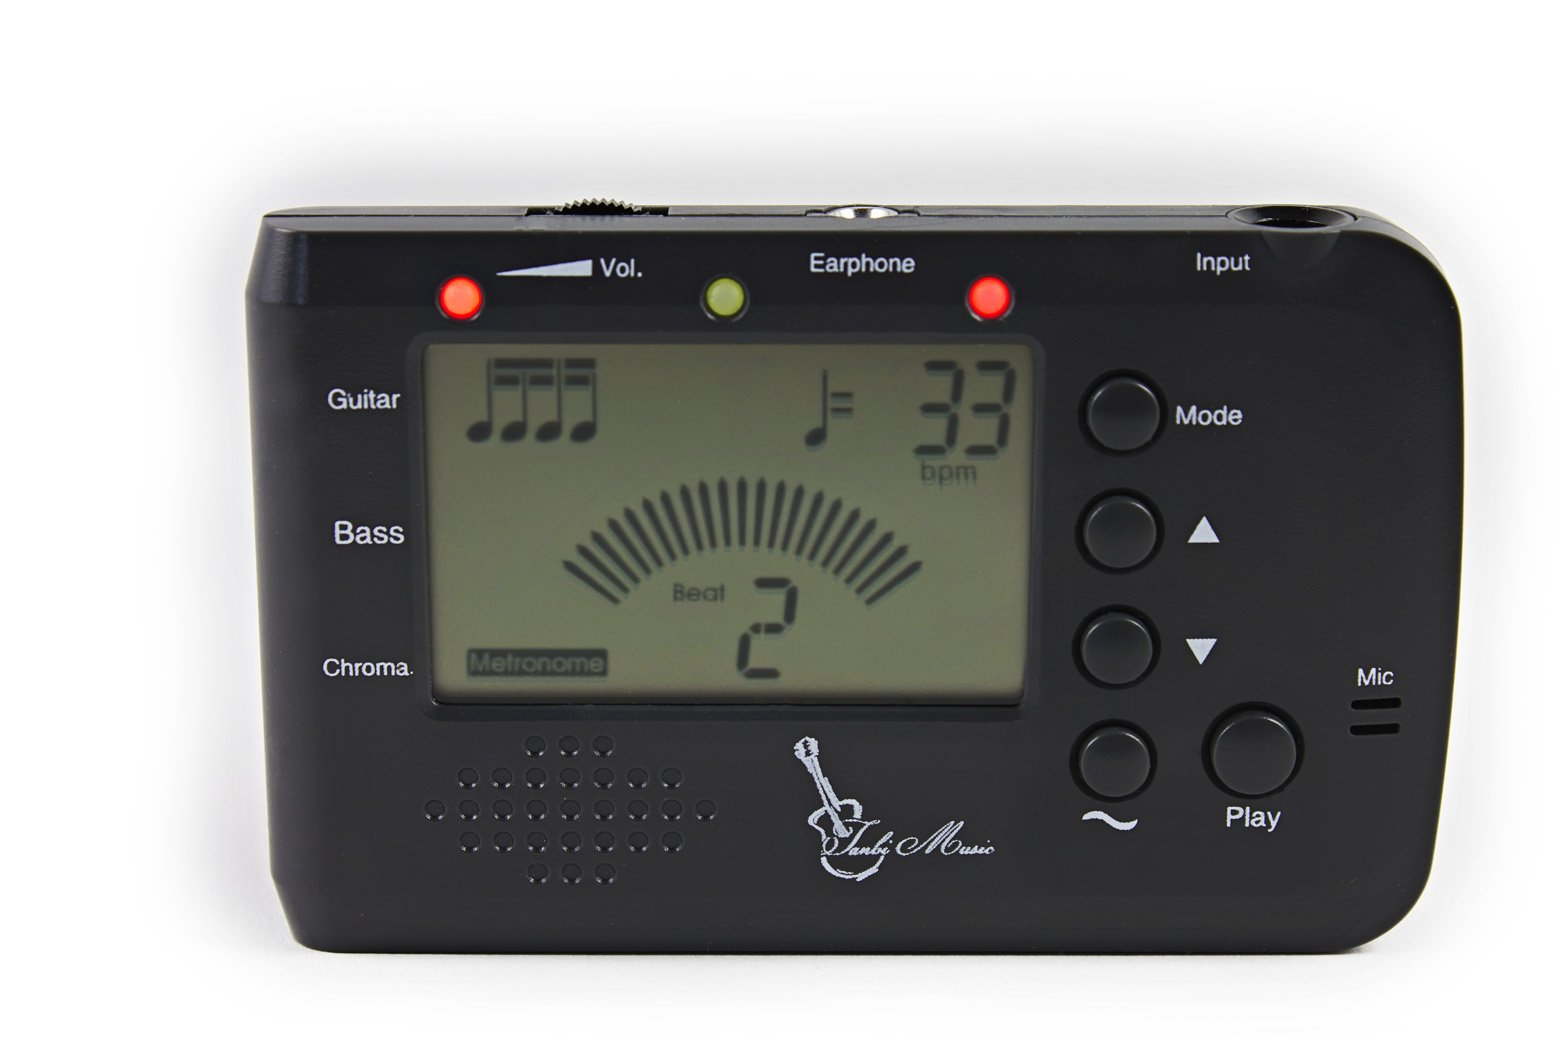 Digital Electronic Metronome Tuner (Tanbi Music MT560GB) – Guitar/Bass/Chromatic Modes - Use for Violin, Ukulele, Banjo, Mandolin & More - Clip-on Pickup and Batteries Included